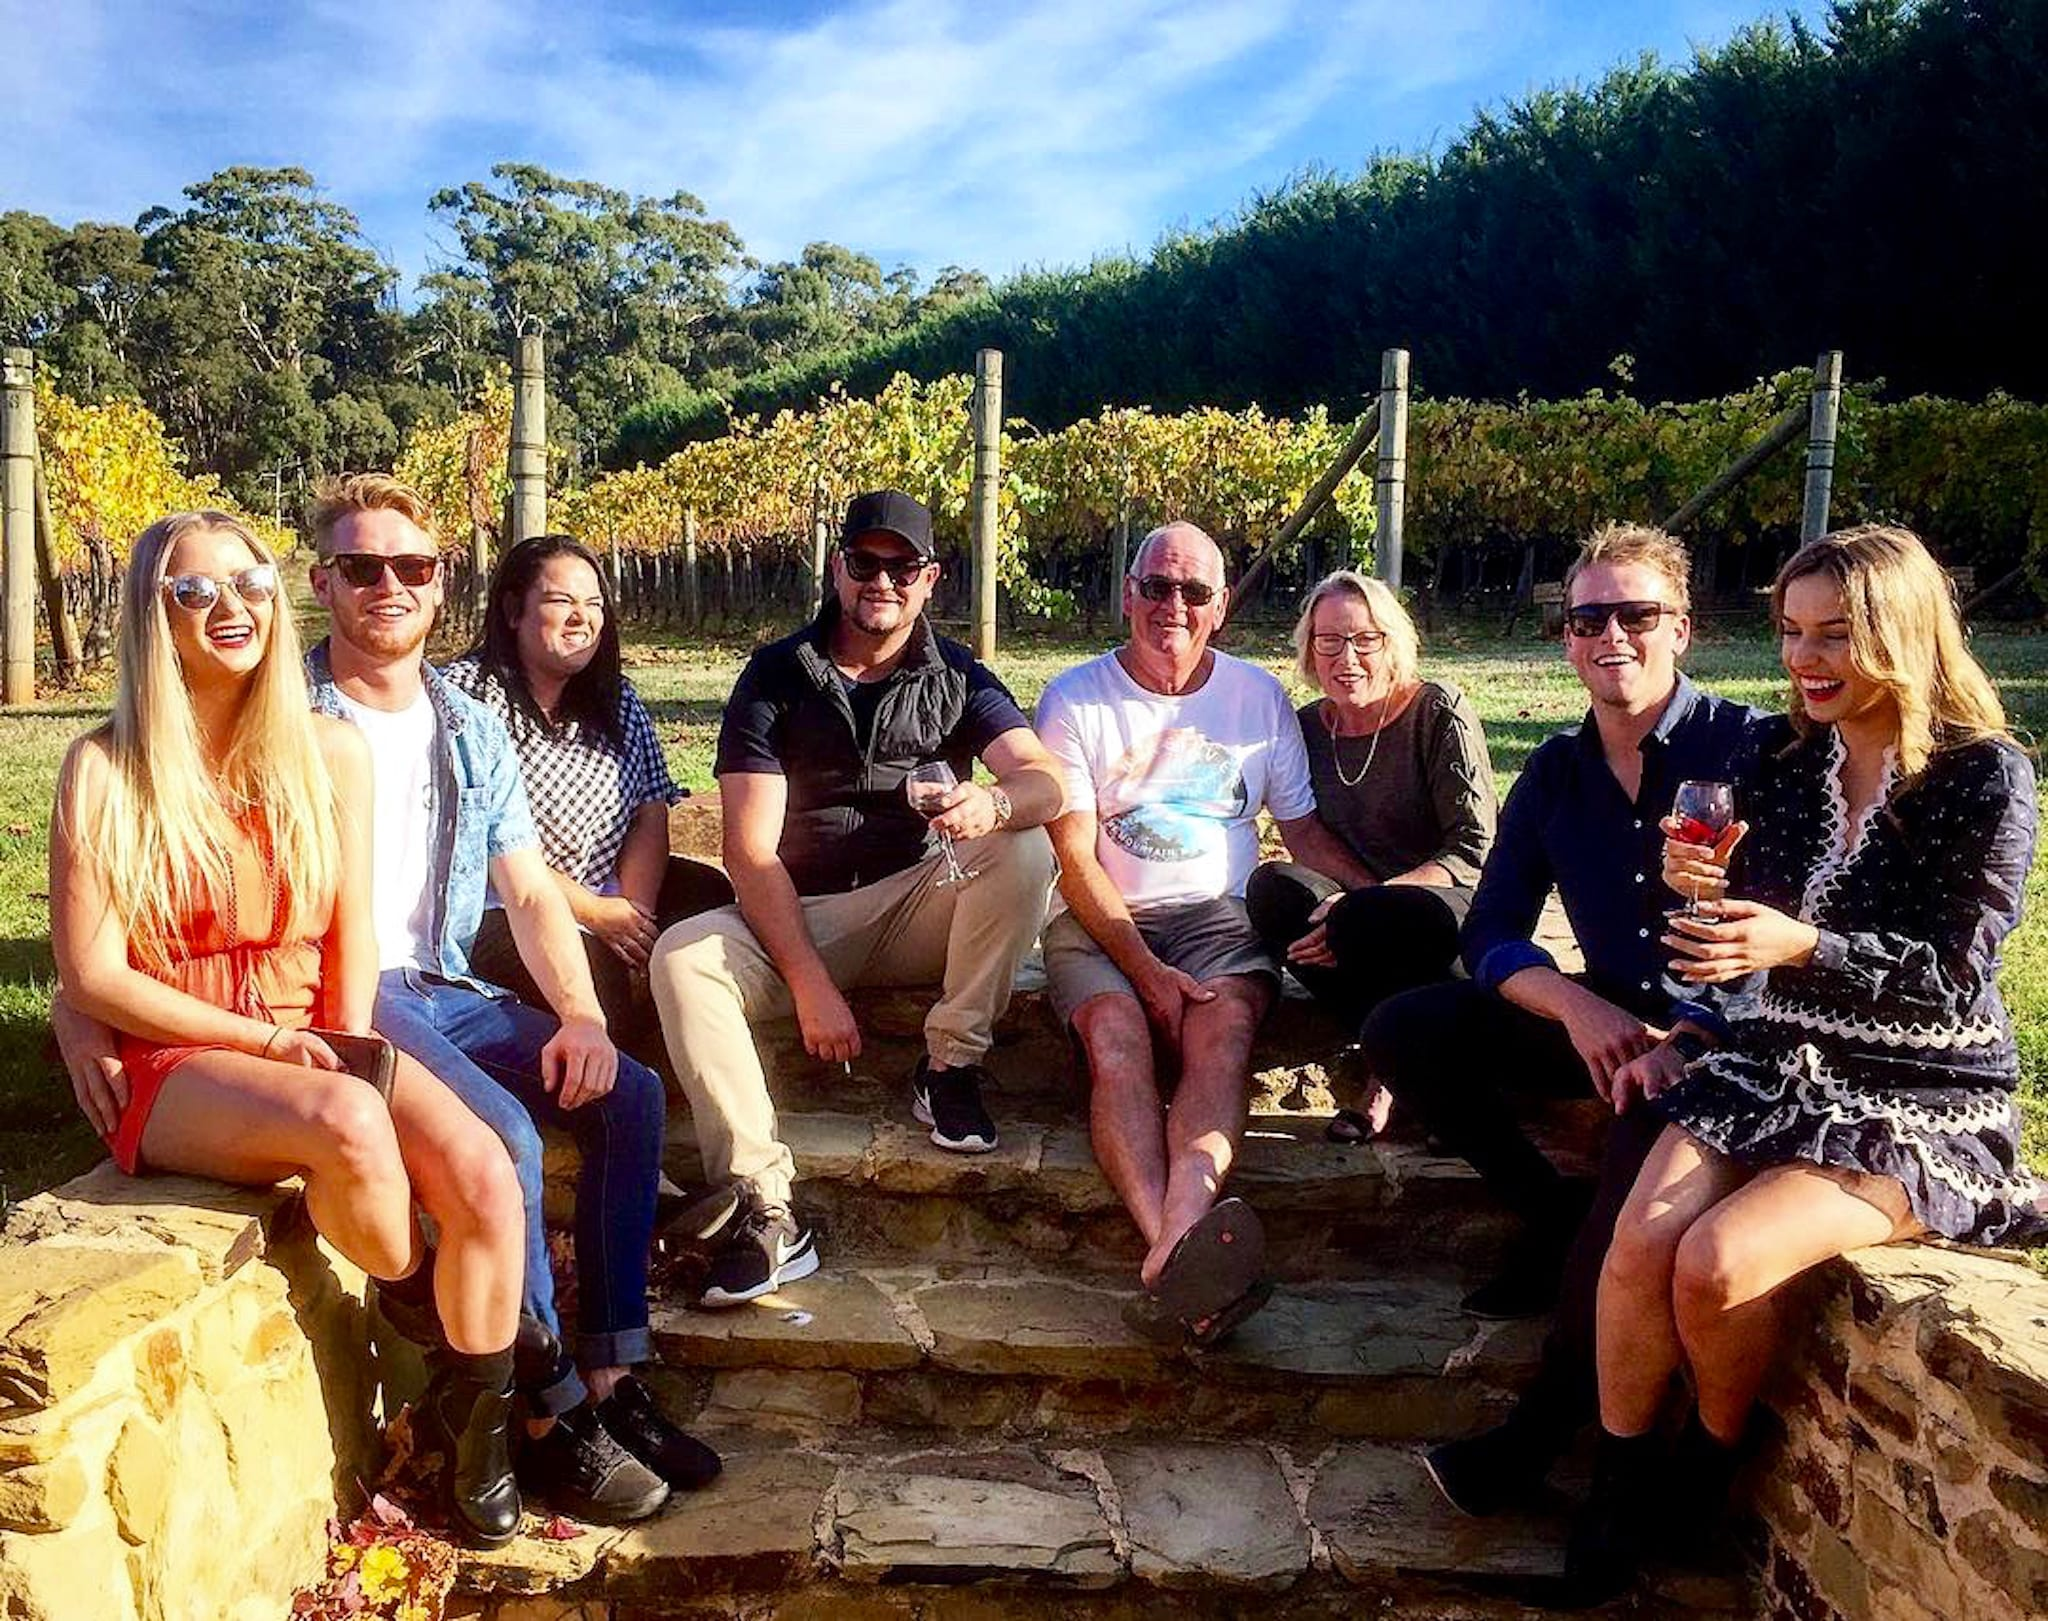 Fontanella Winery is a must